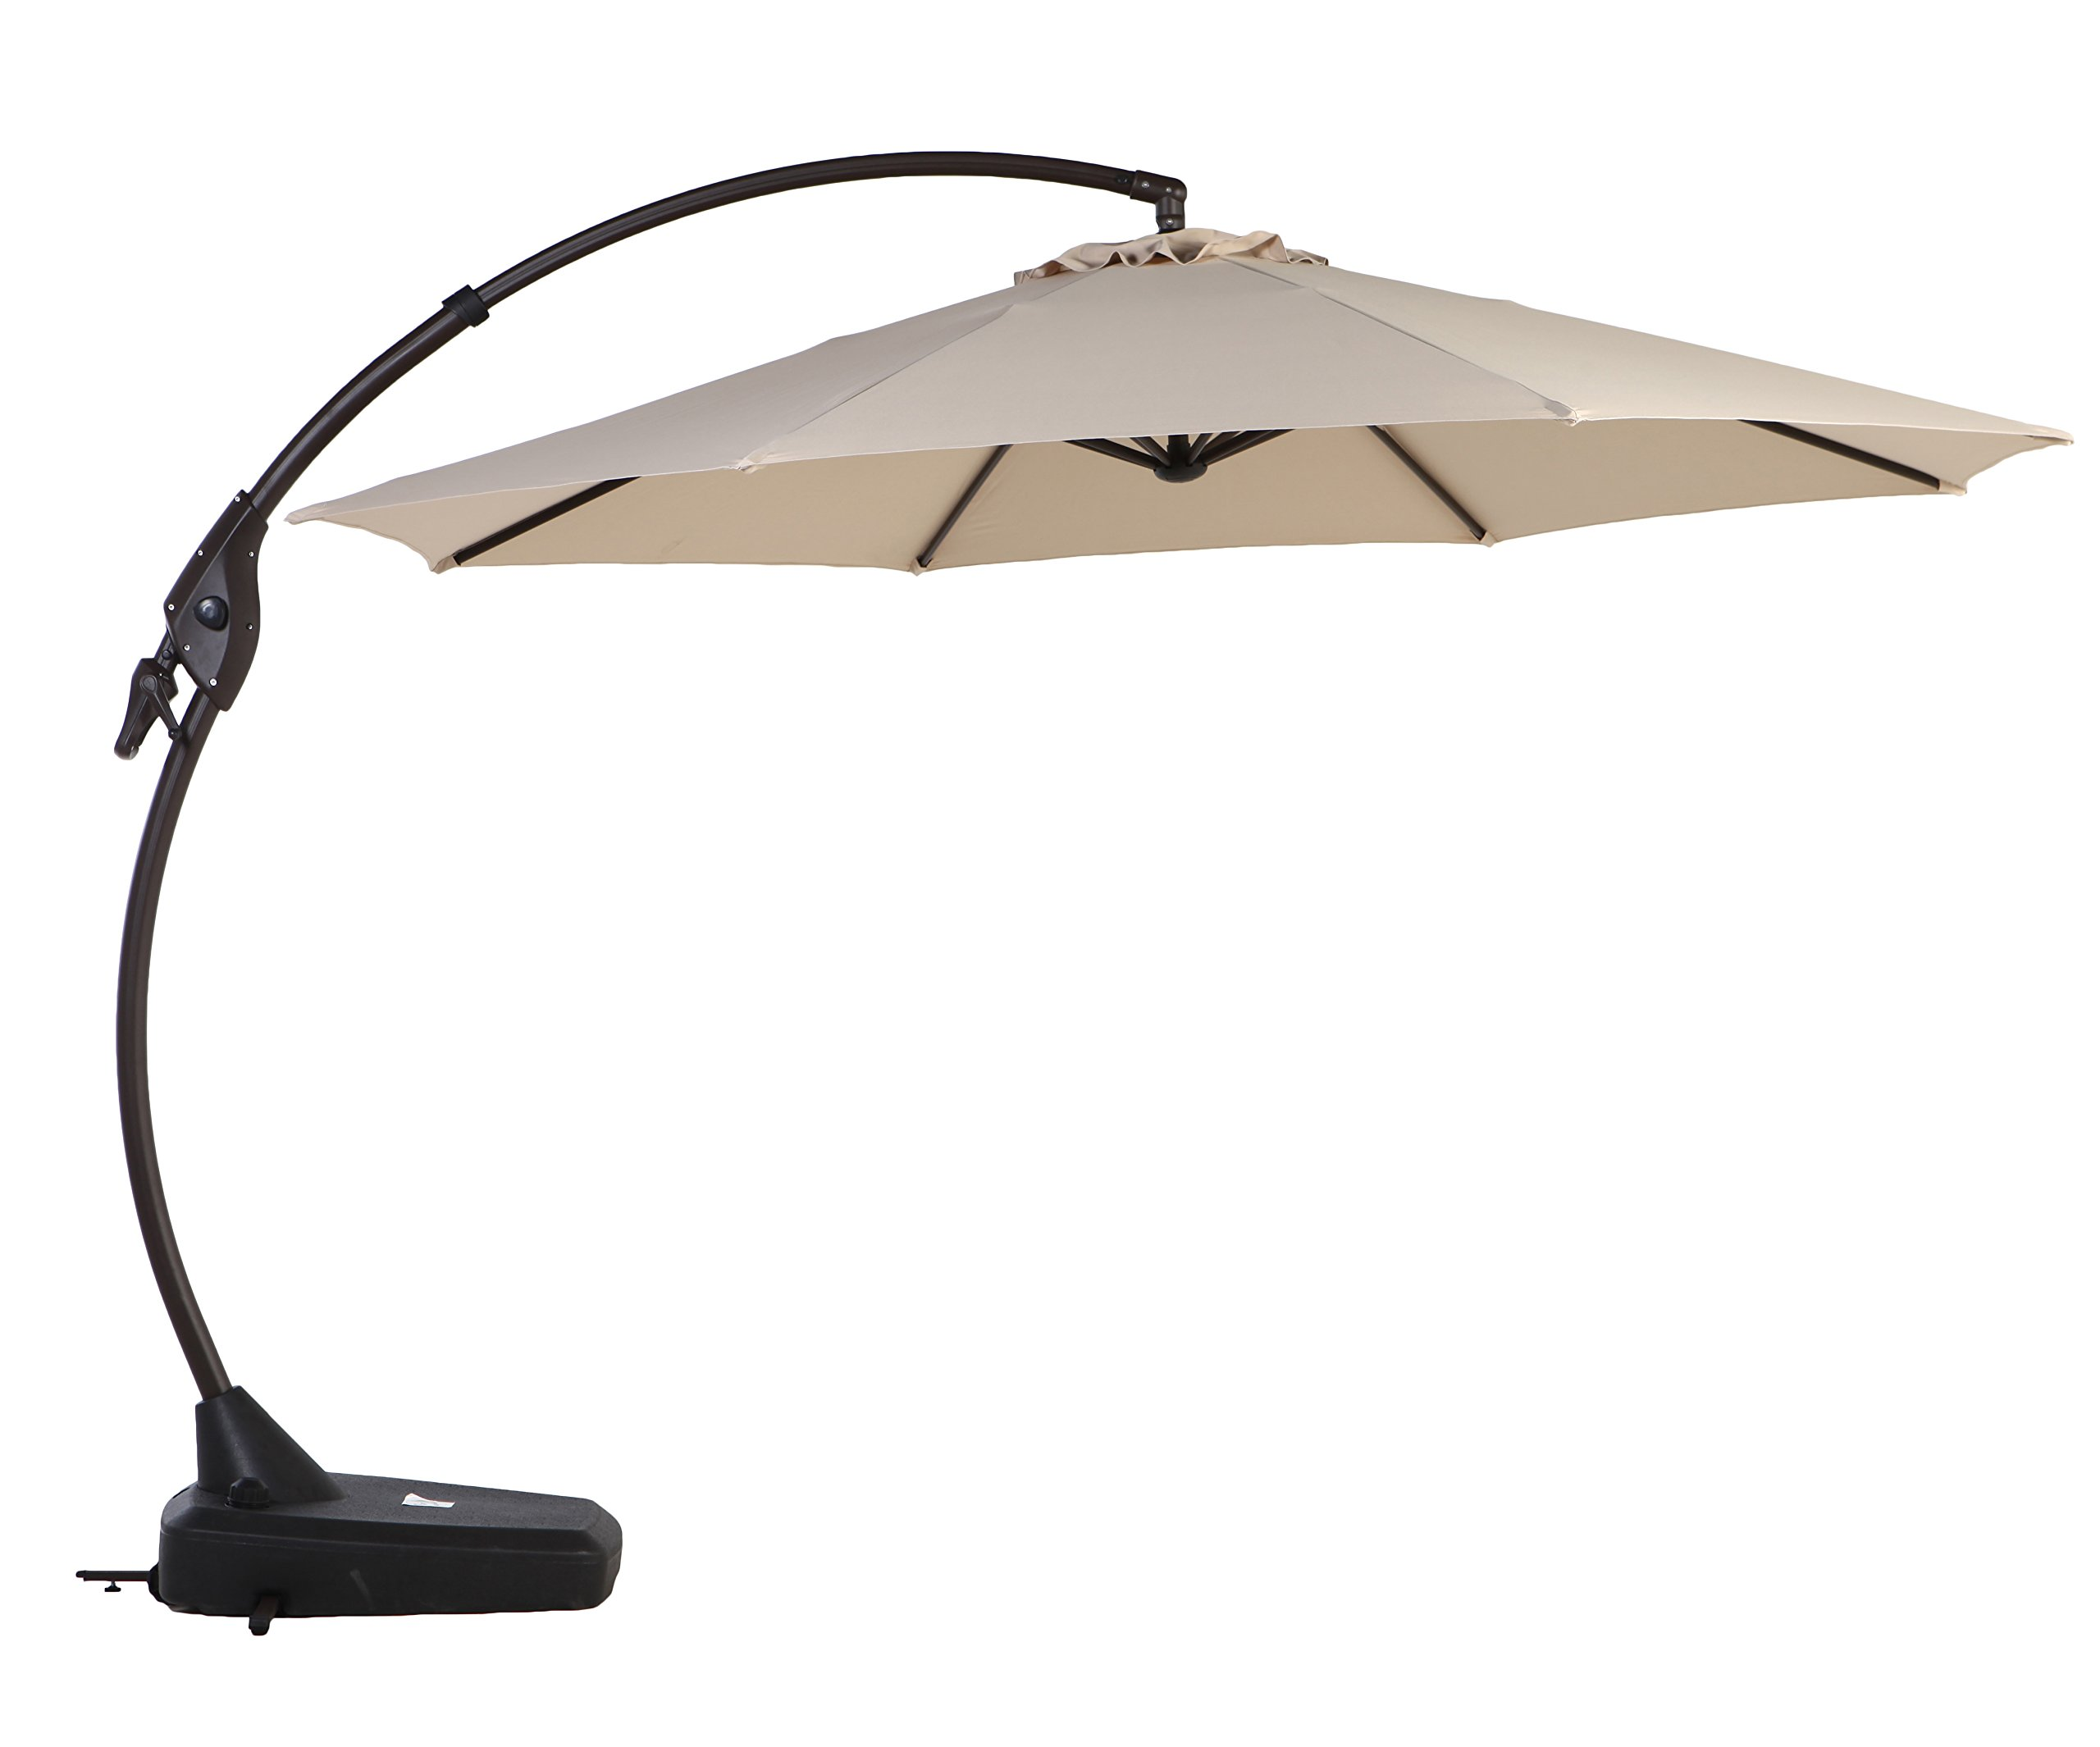 Grand Patio Deluxe 11.5 FT Curvy Aluminum Offset Umbrella with Handle and Crank, Banana Style Cantilever Umbrella, 8 Ribs Large Patio Umbrella with Base, Beige